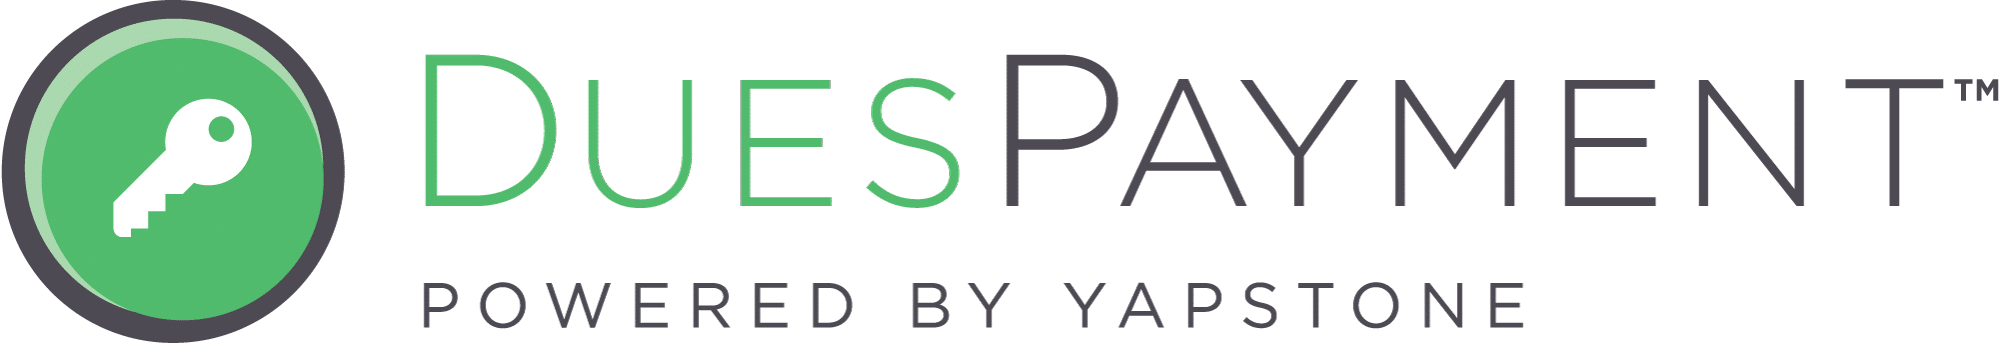 Dues Payment, Powered by Yapstone